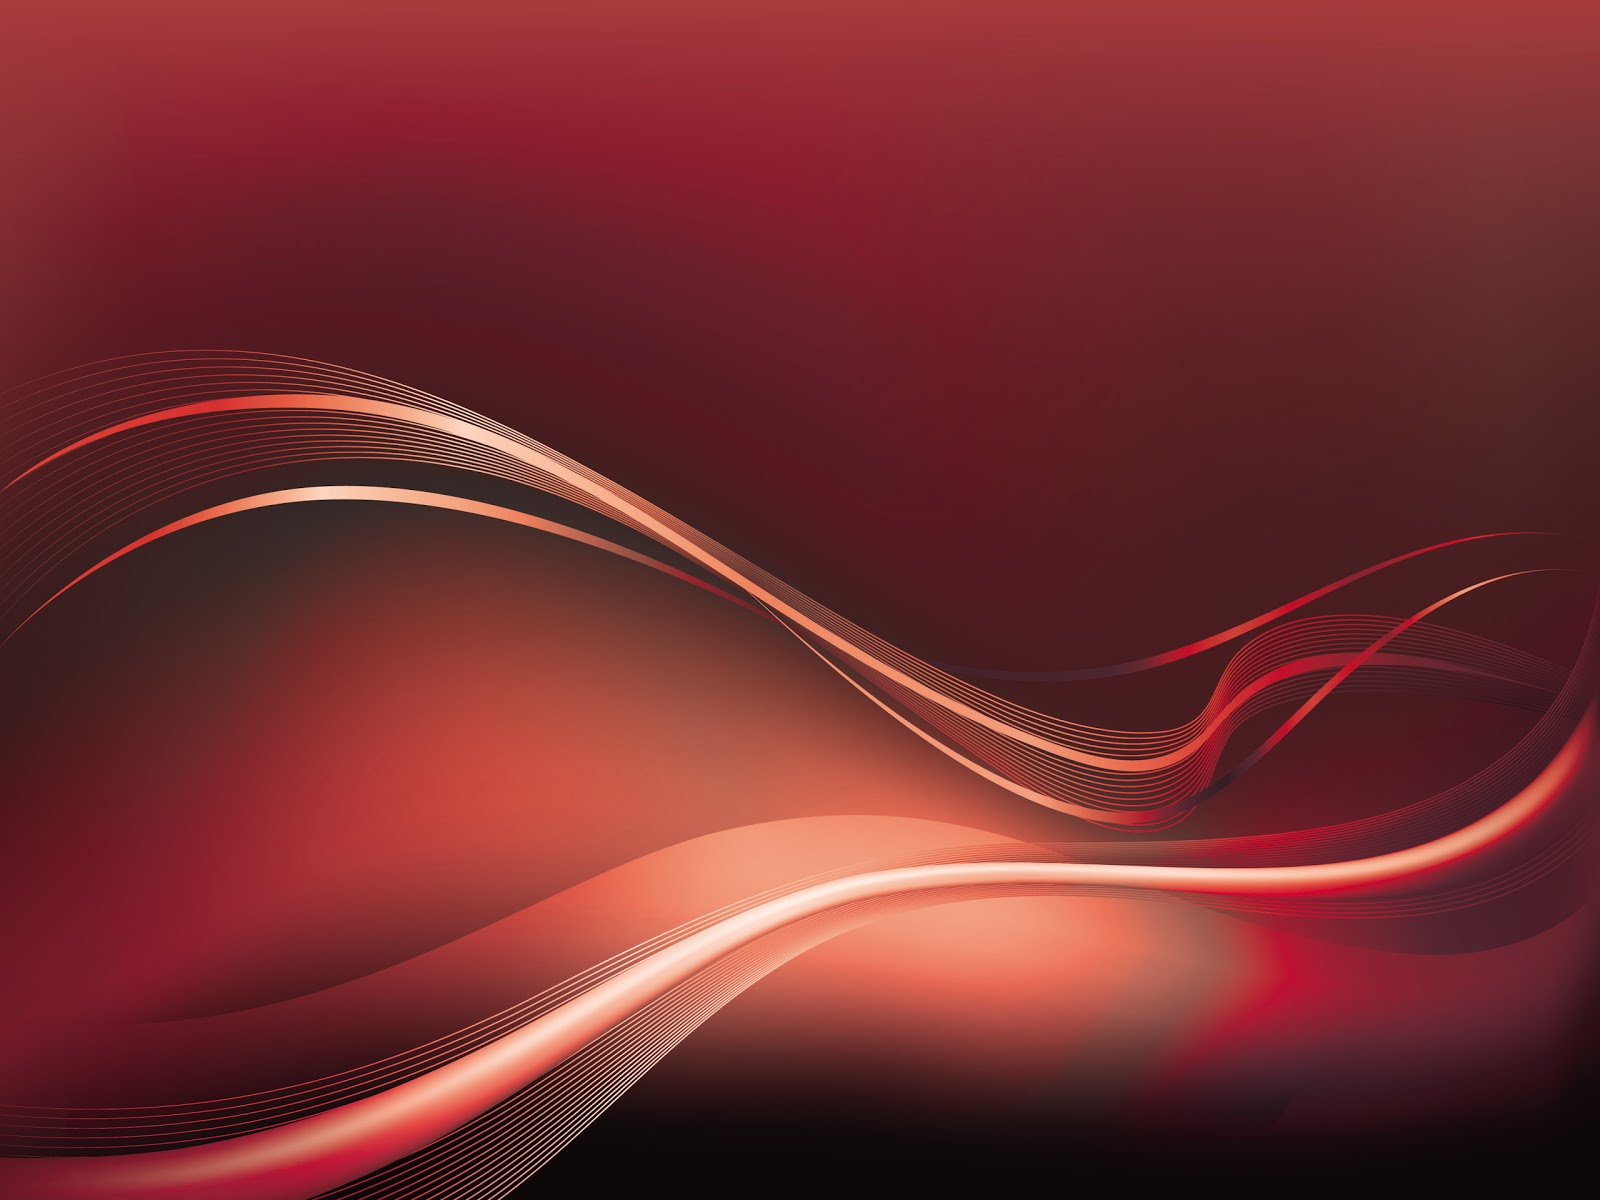 Line Design Art Psd : Psd graphics red waves and lines vector background hd